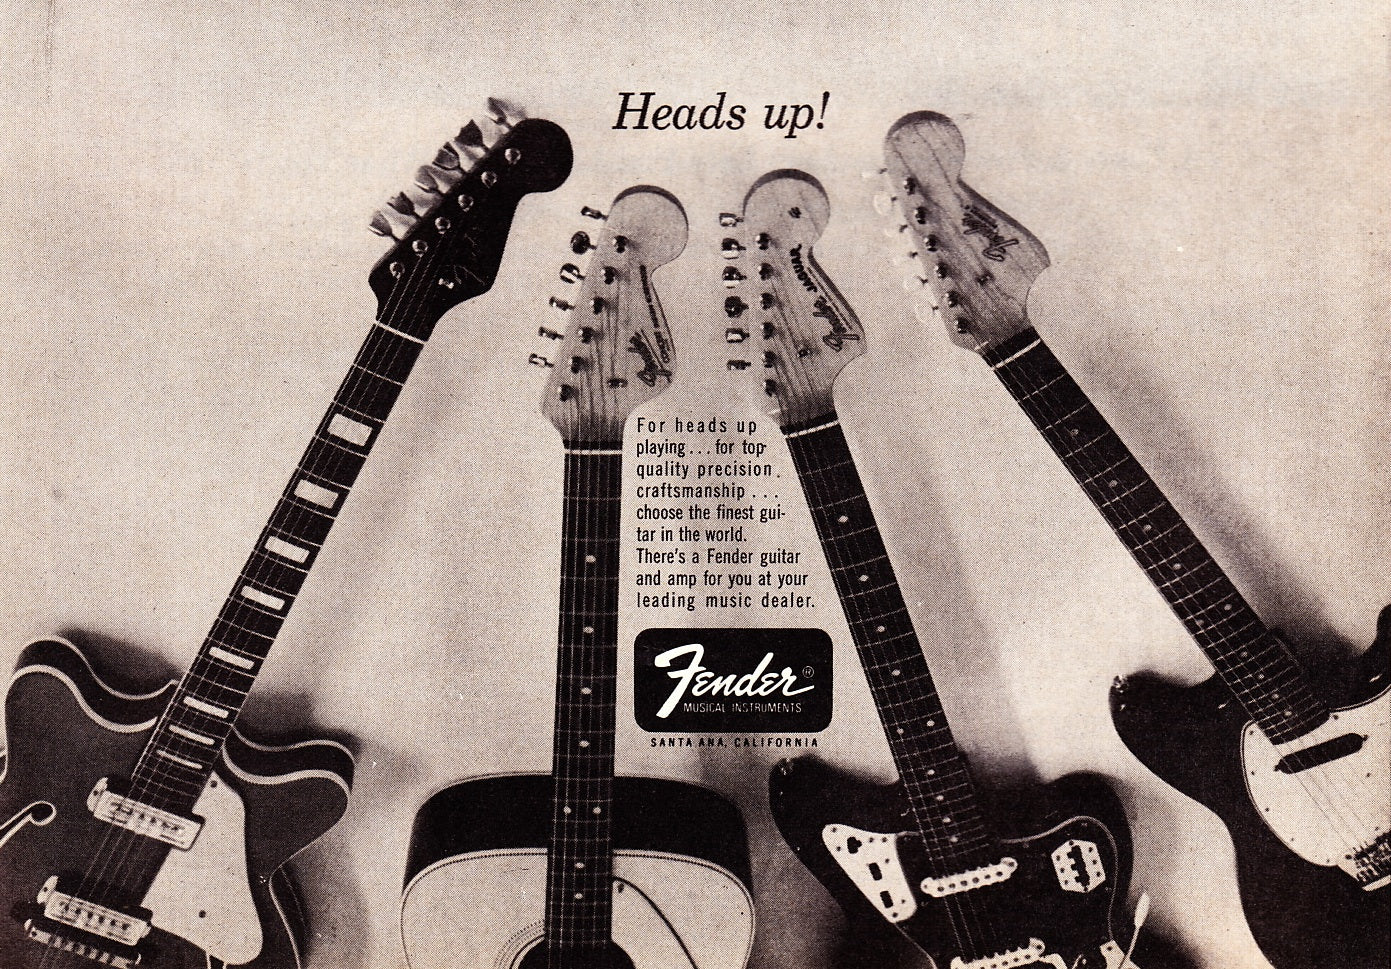 Fender heads up ad